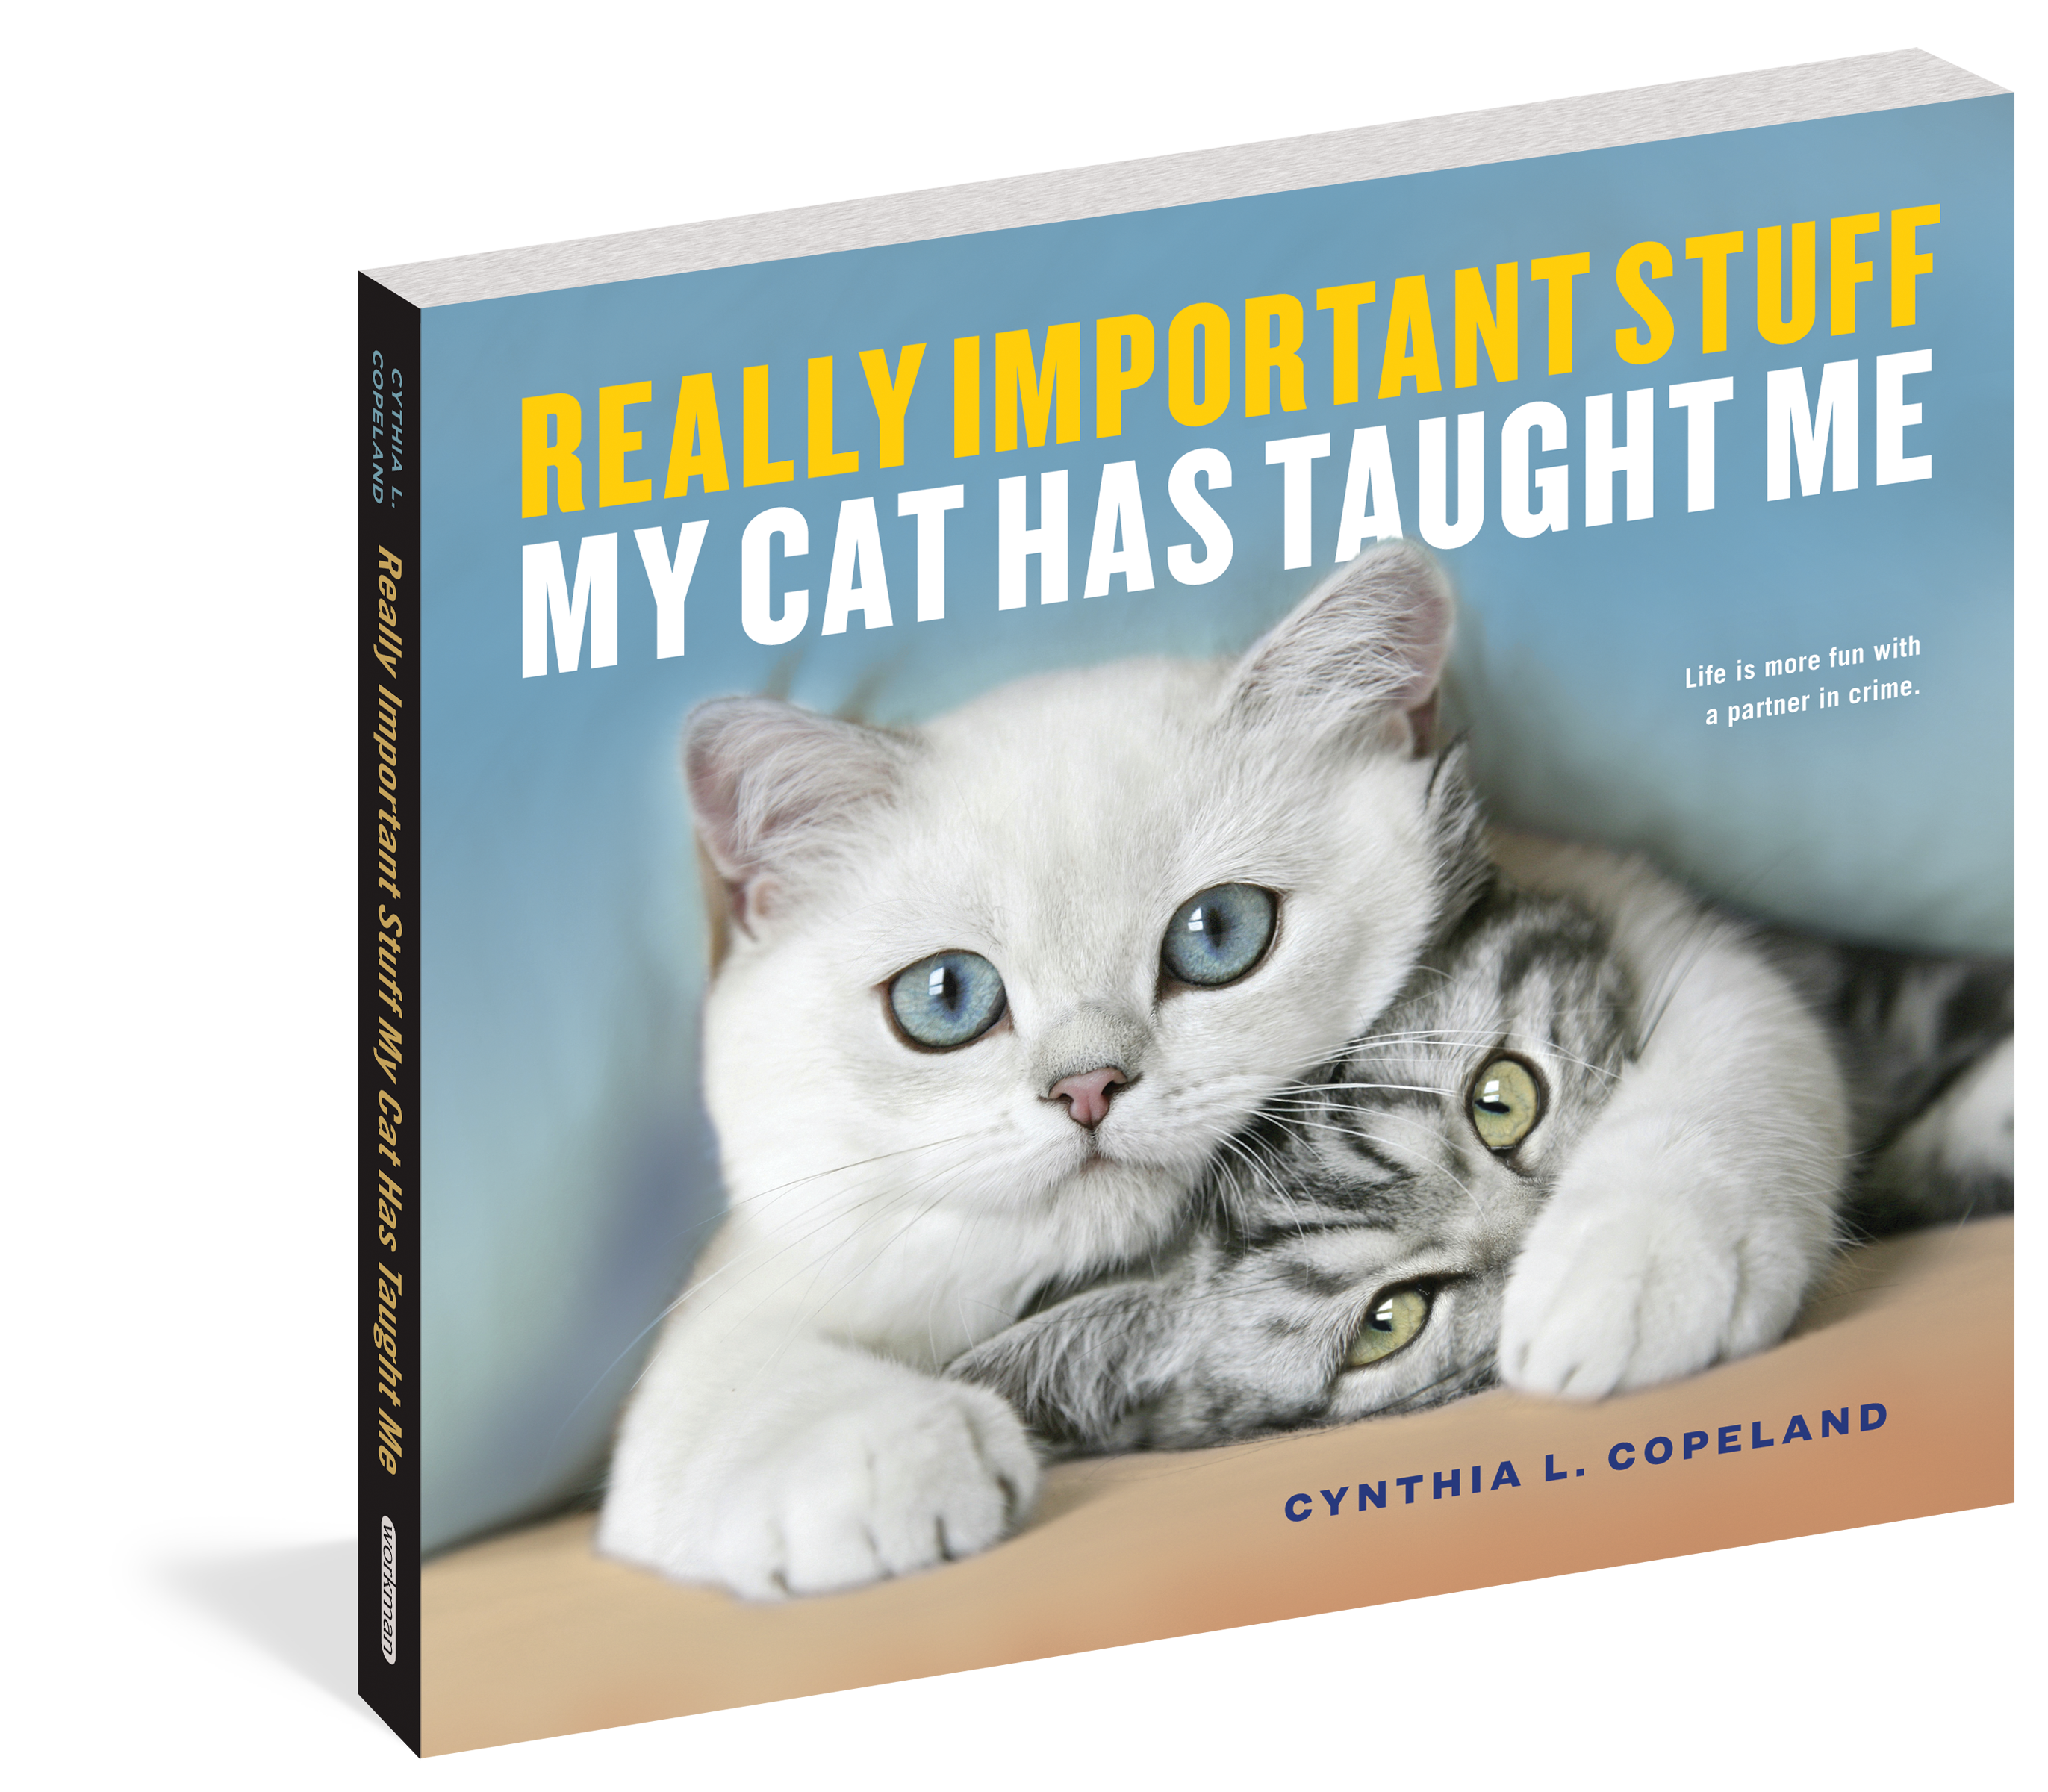 Important Stuff My Dog Or Cat Taught Me Books